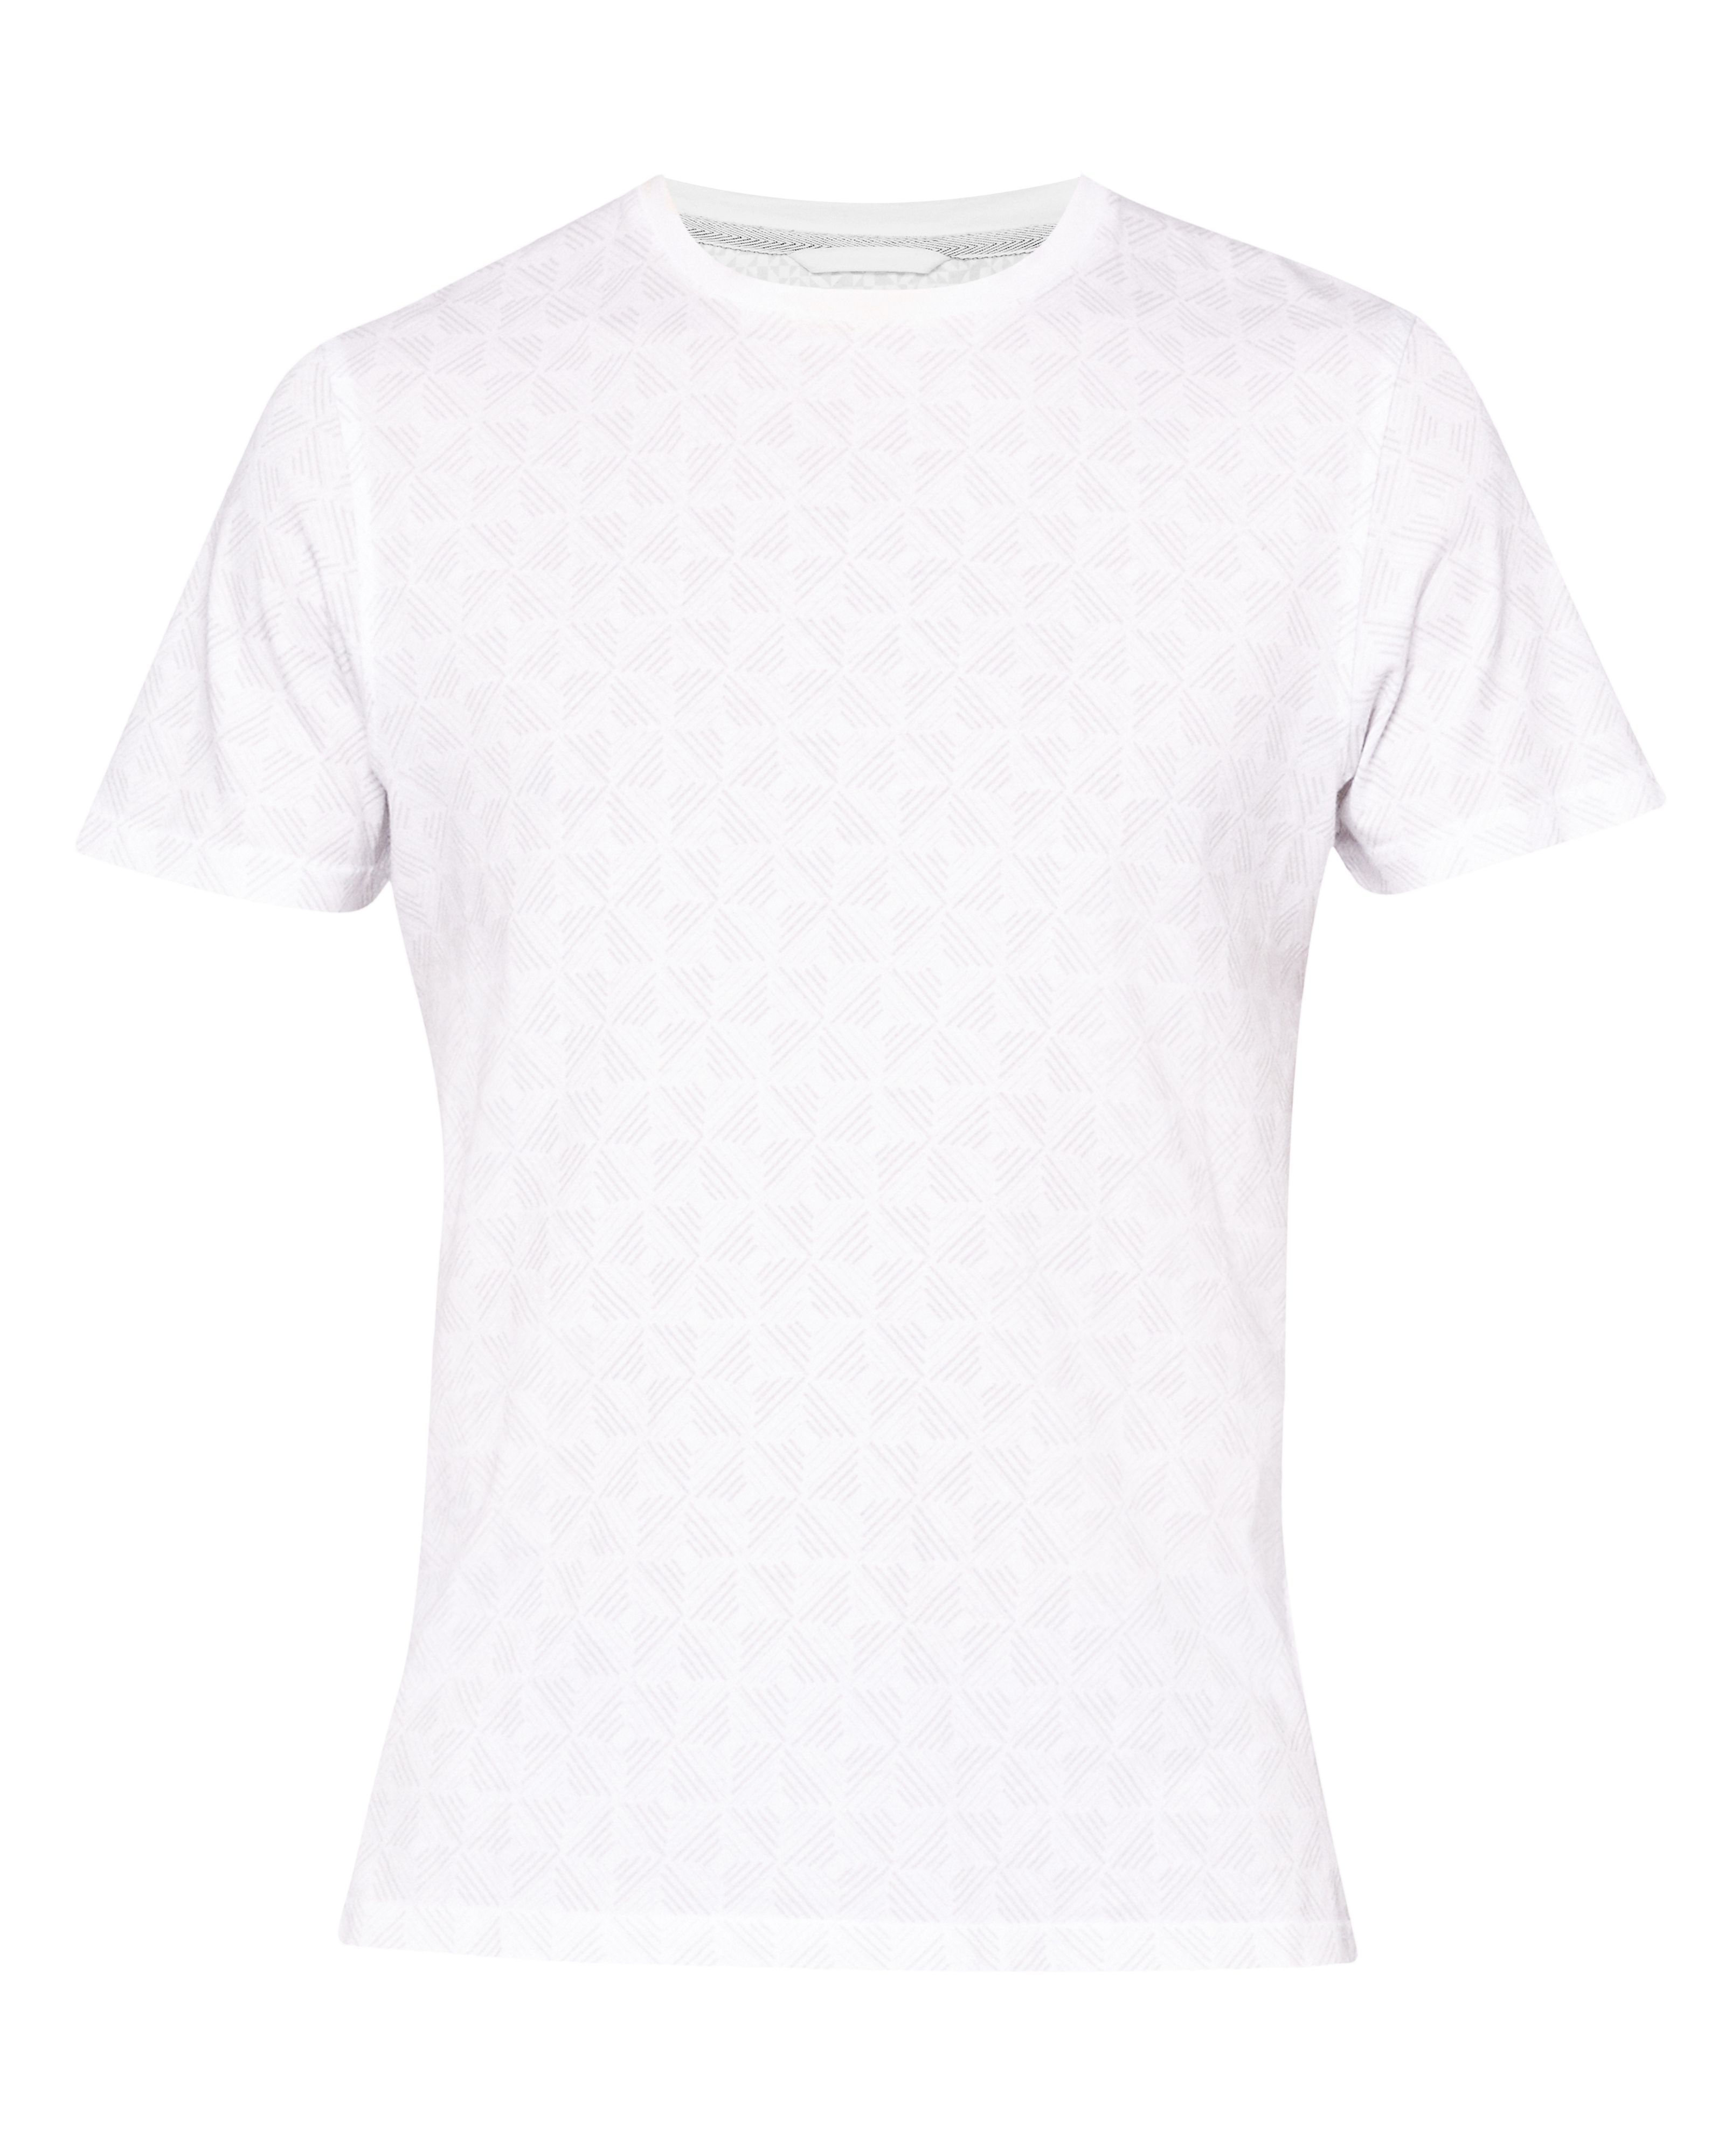 Men's Ted Baker Craay Geo Print Cotton T-Shirt, White